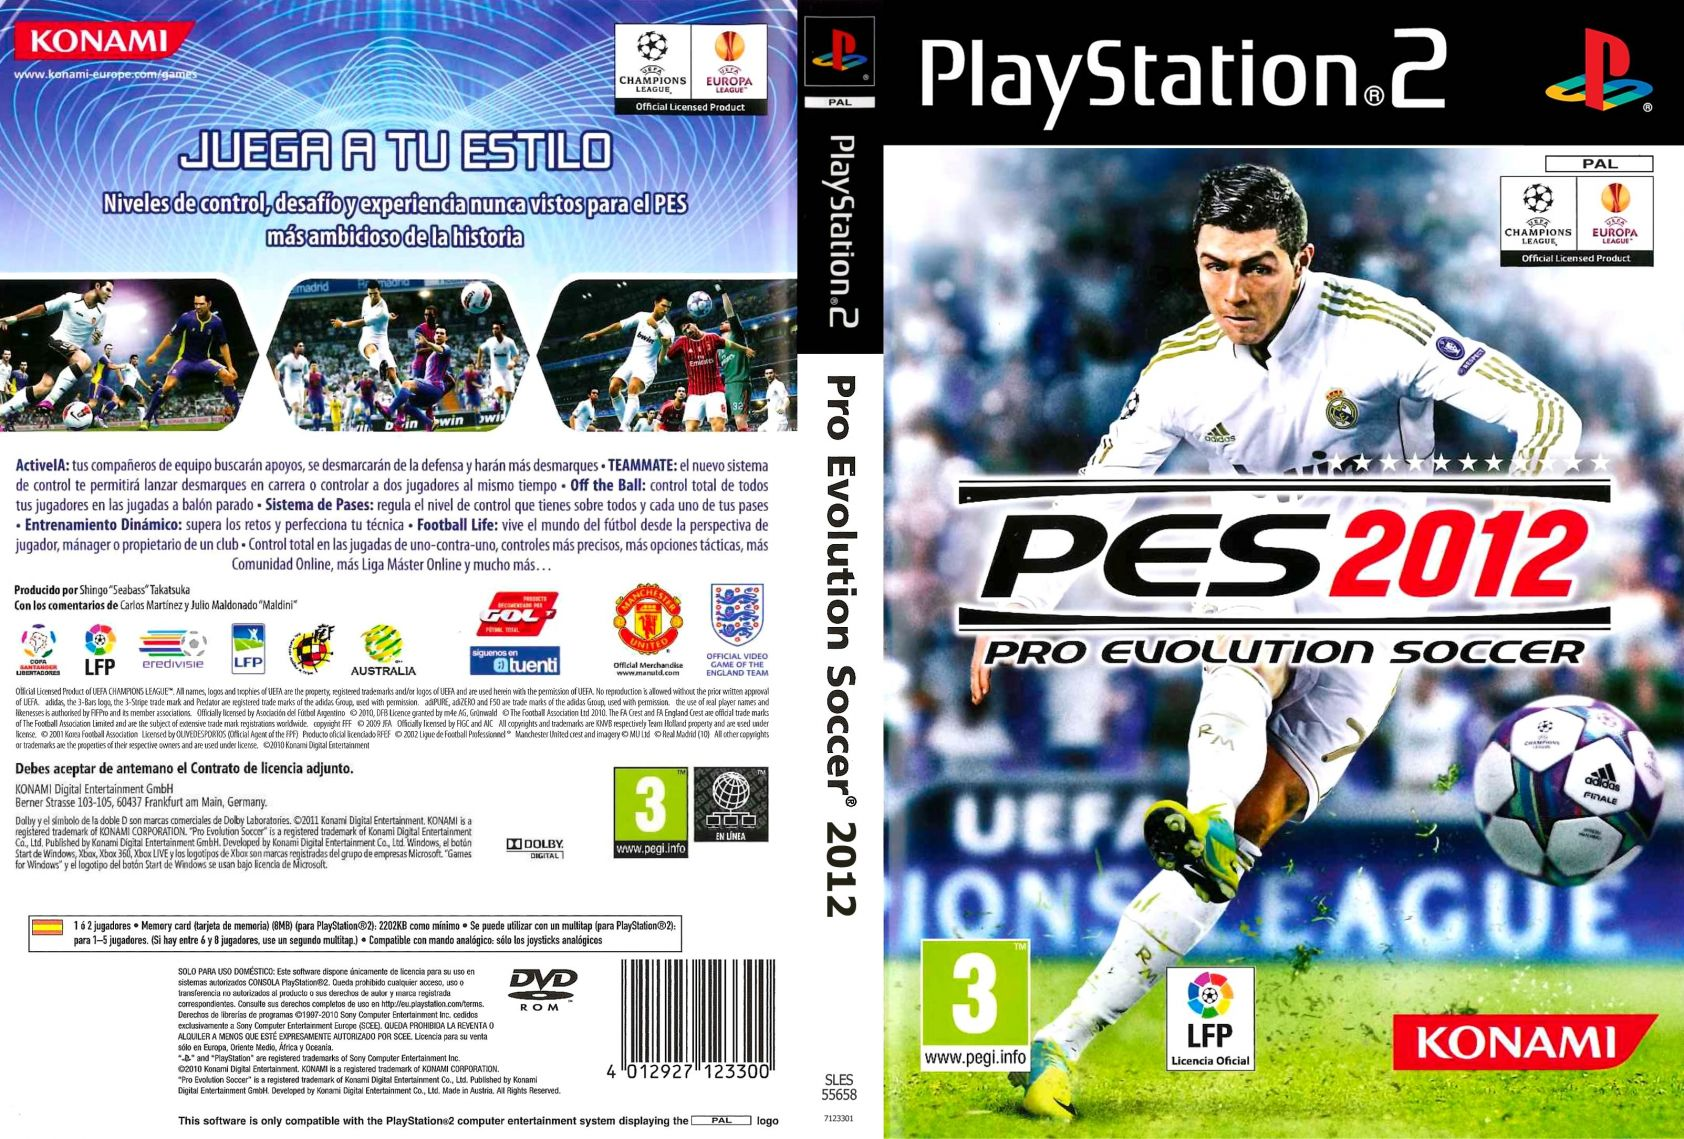 how to play pal dvd on ps3